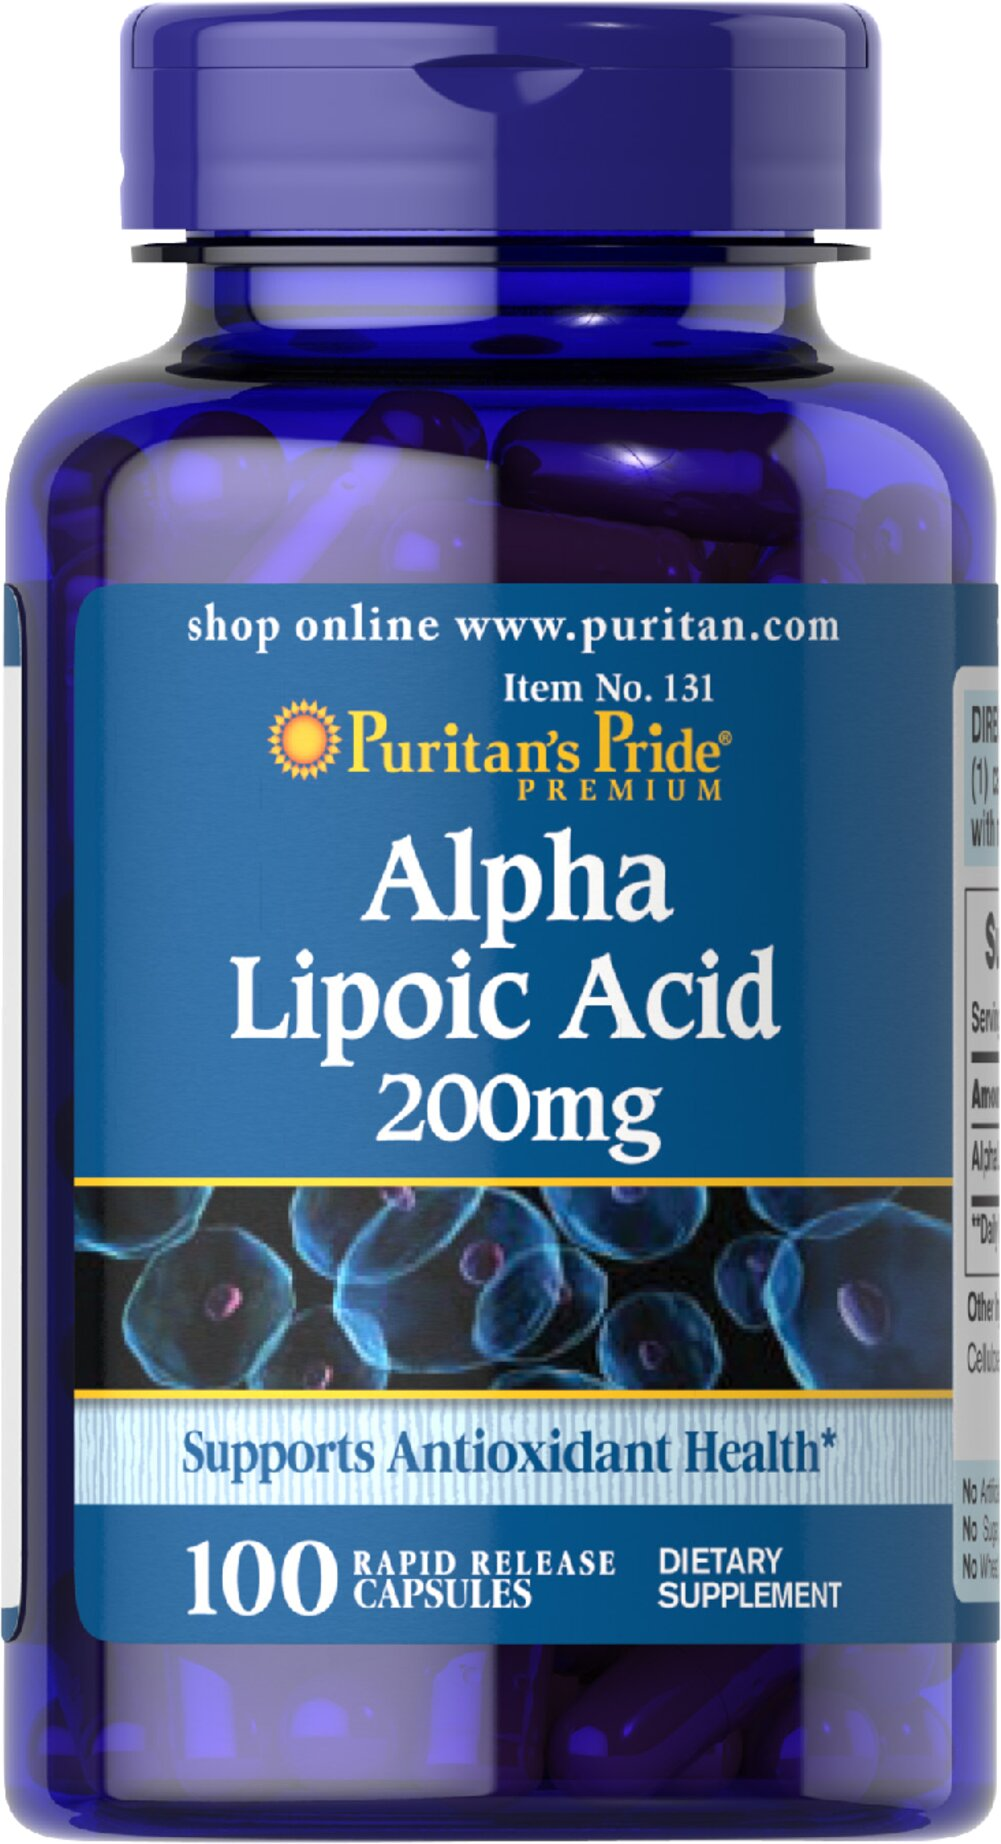 "Alpha Lipoic Acid 200 mg <p>Alpha Lipoic Acid (ALA) helps metabolize sugar, especially in muscles, where it promotes energy.**</p><p>ALA is also beneficial for liver health, and helps to revitalize the underlying structure of the skin so it can look healthier and more radiant.**</p><p> ALA is often called the ""universal antioxidant"" for its ability to help neutralize cell-damaging free radicals.** </p> 100 Capsules 200 mg $19.99"